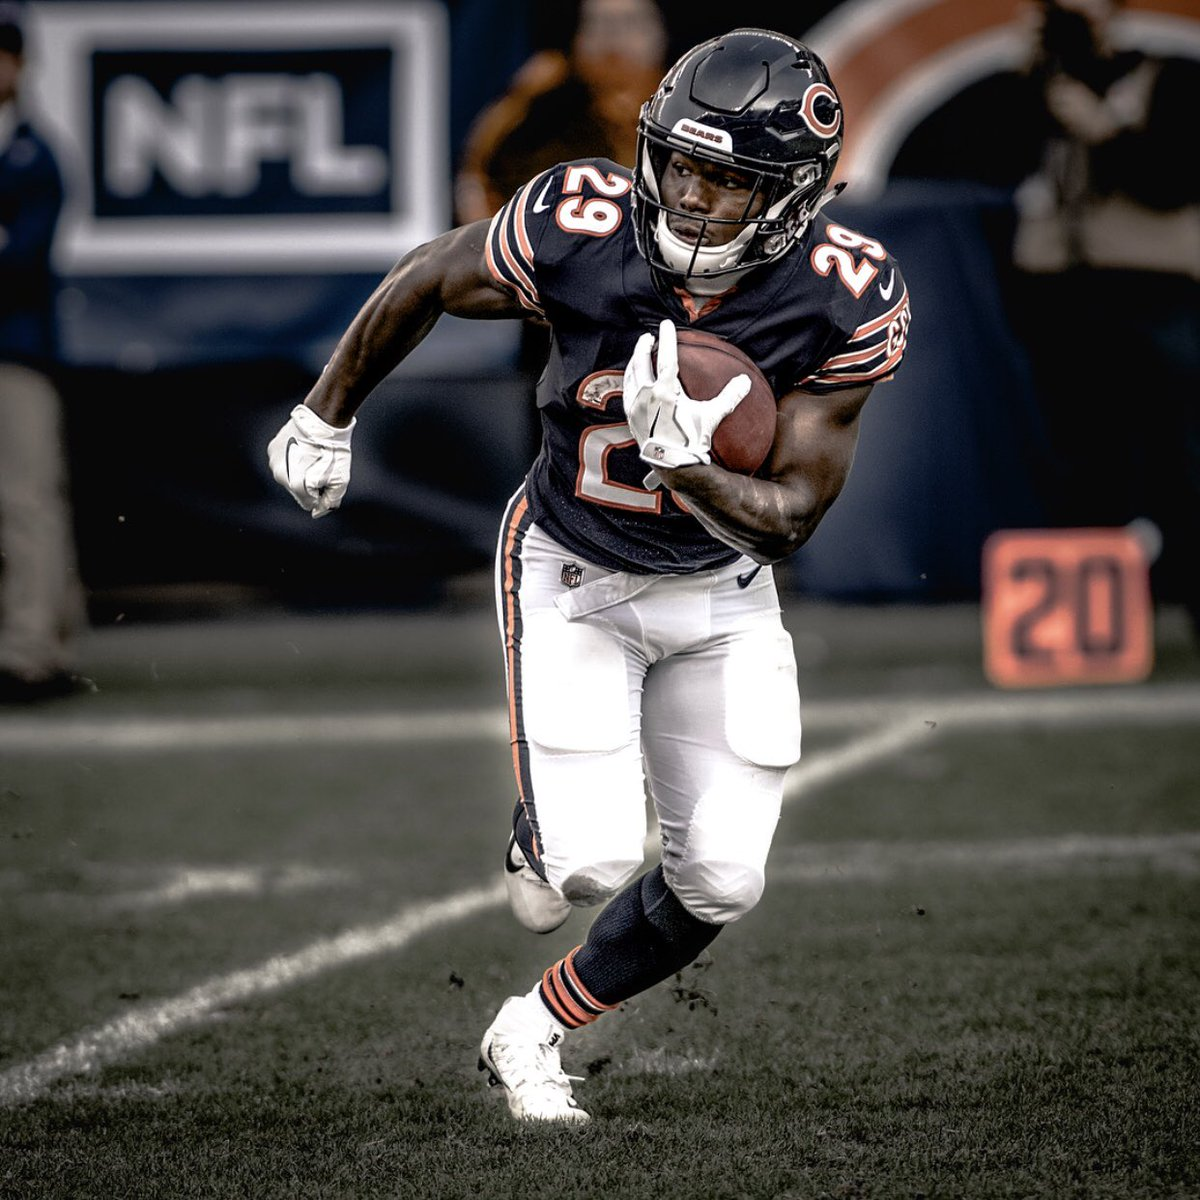 Will dual-threat @TarikCohen have more rushing or receiving yards this season? 🤔